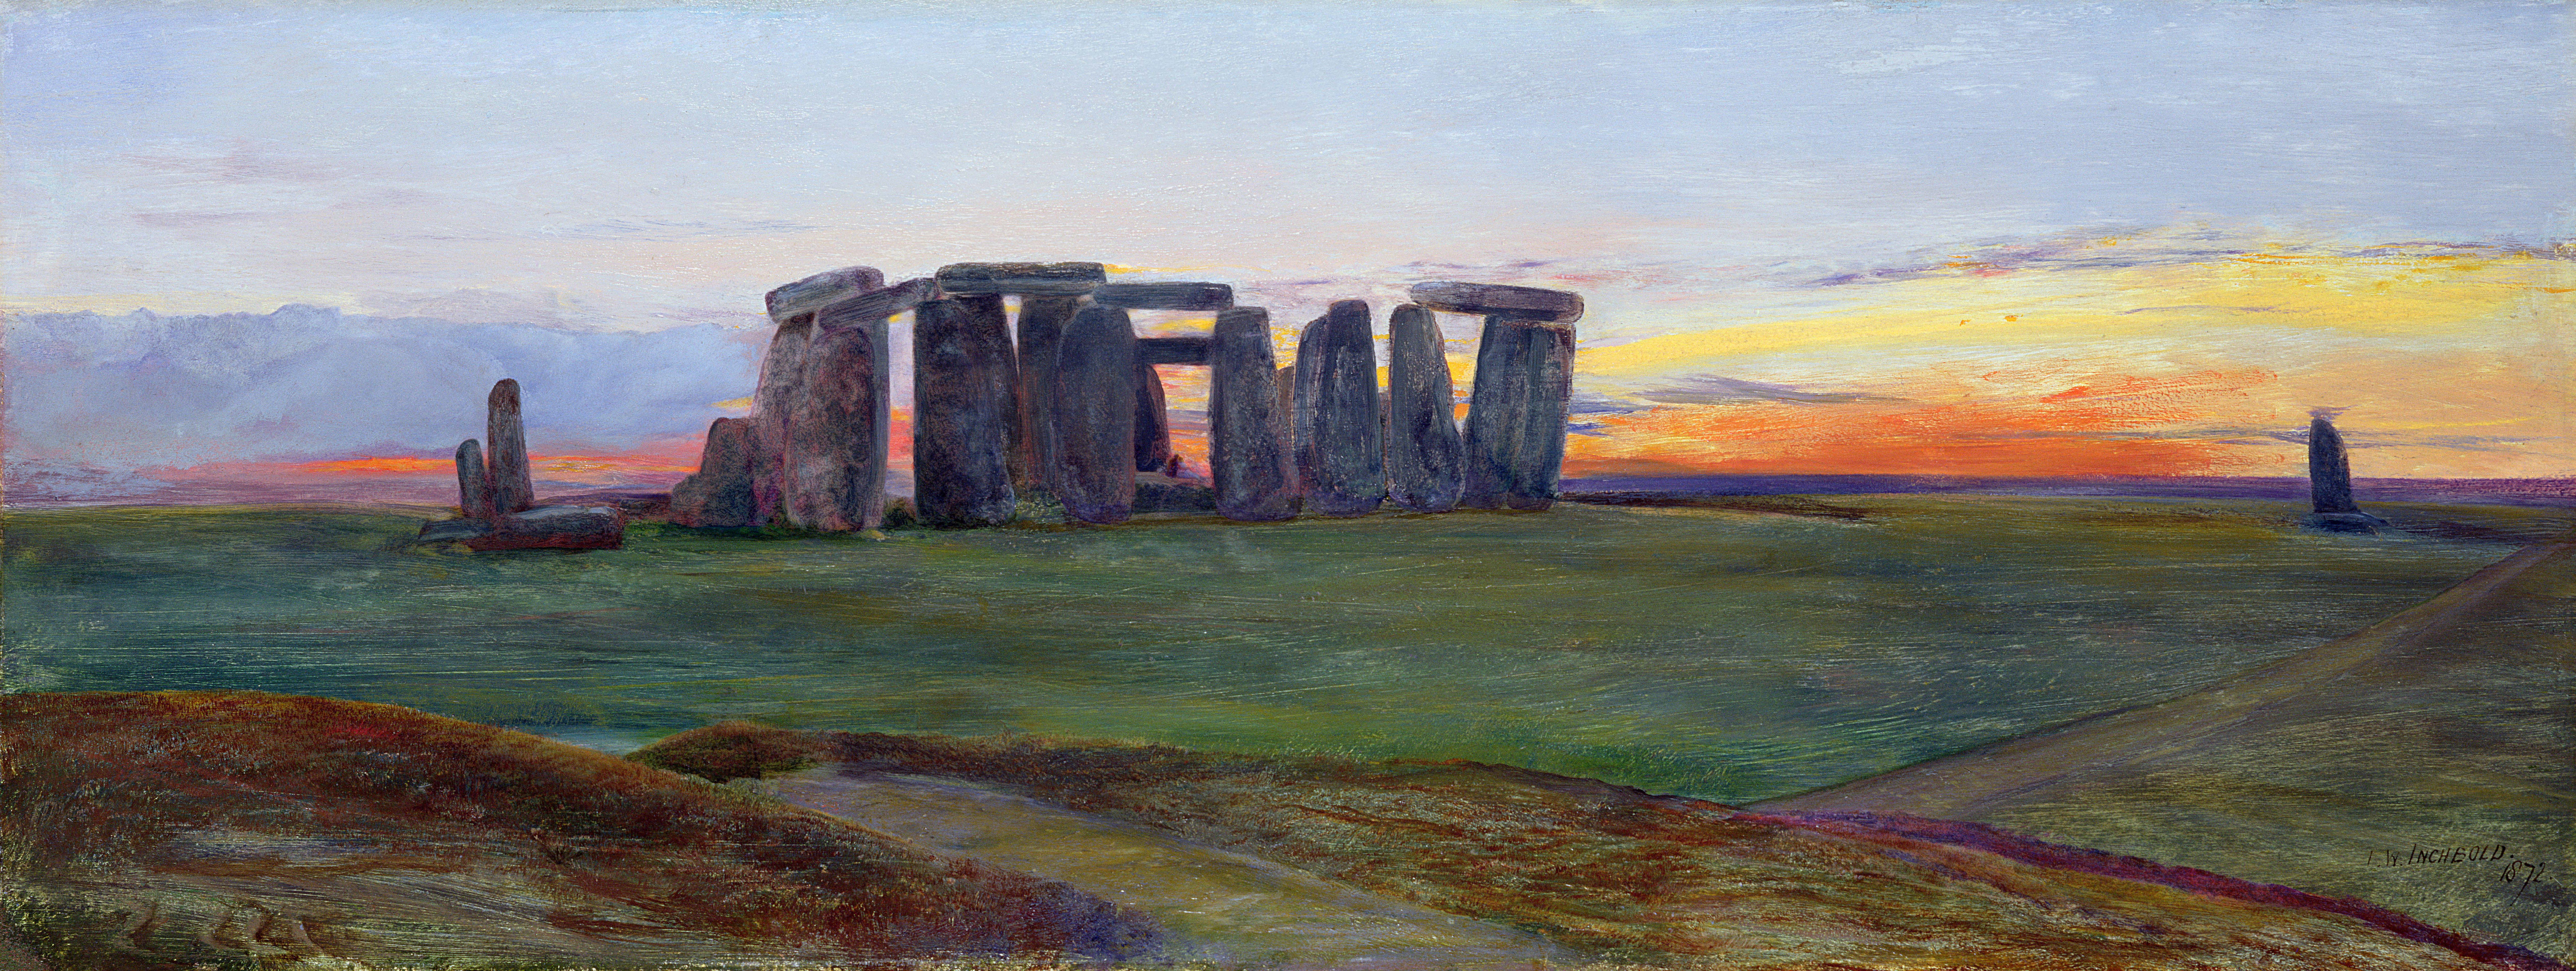 Stonehenge by John William Inchbold painted in 1873